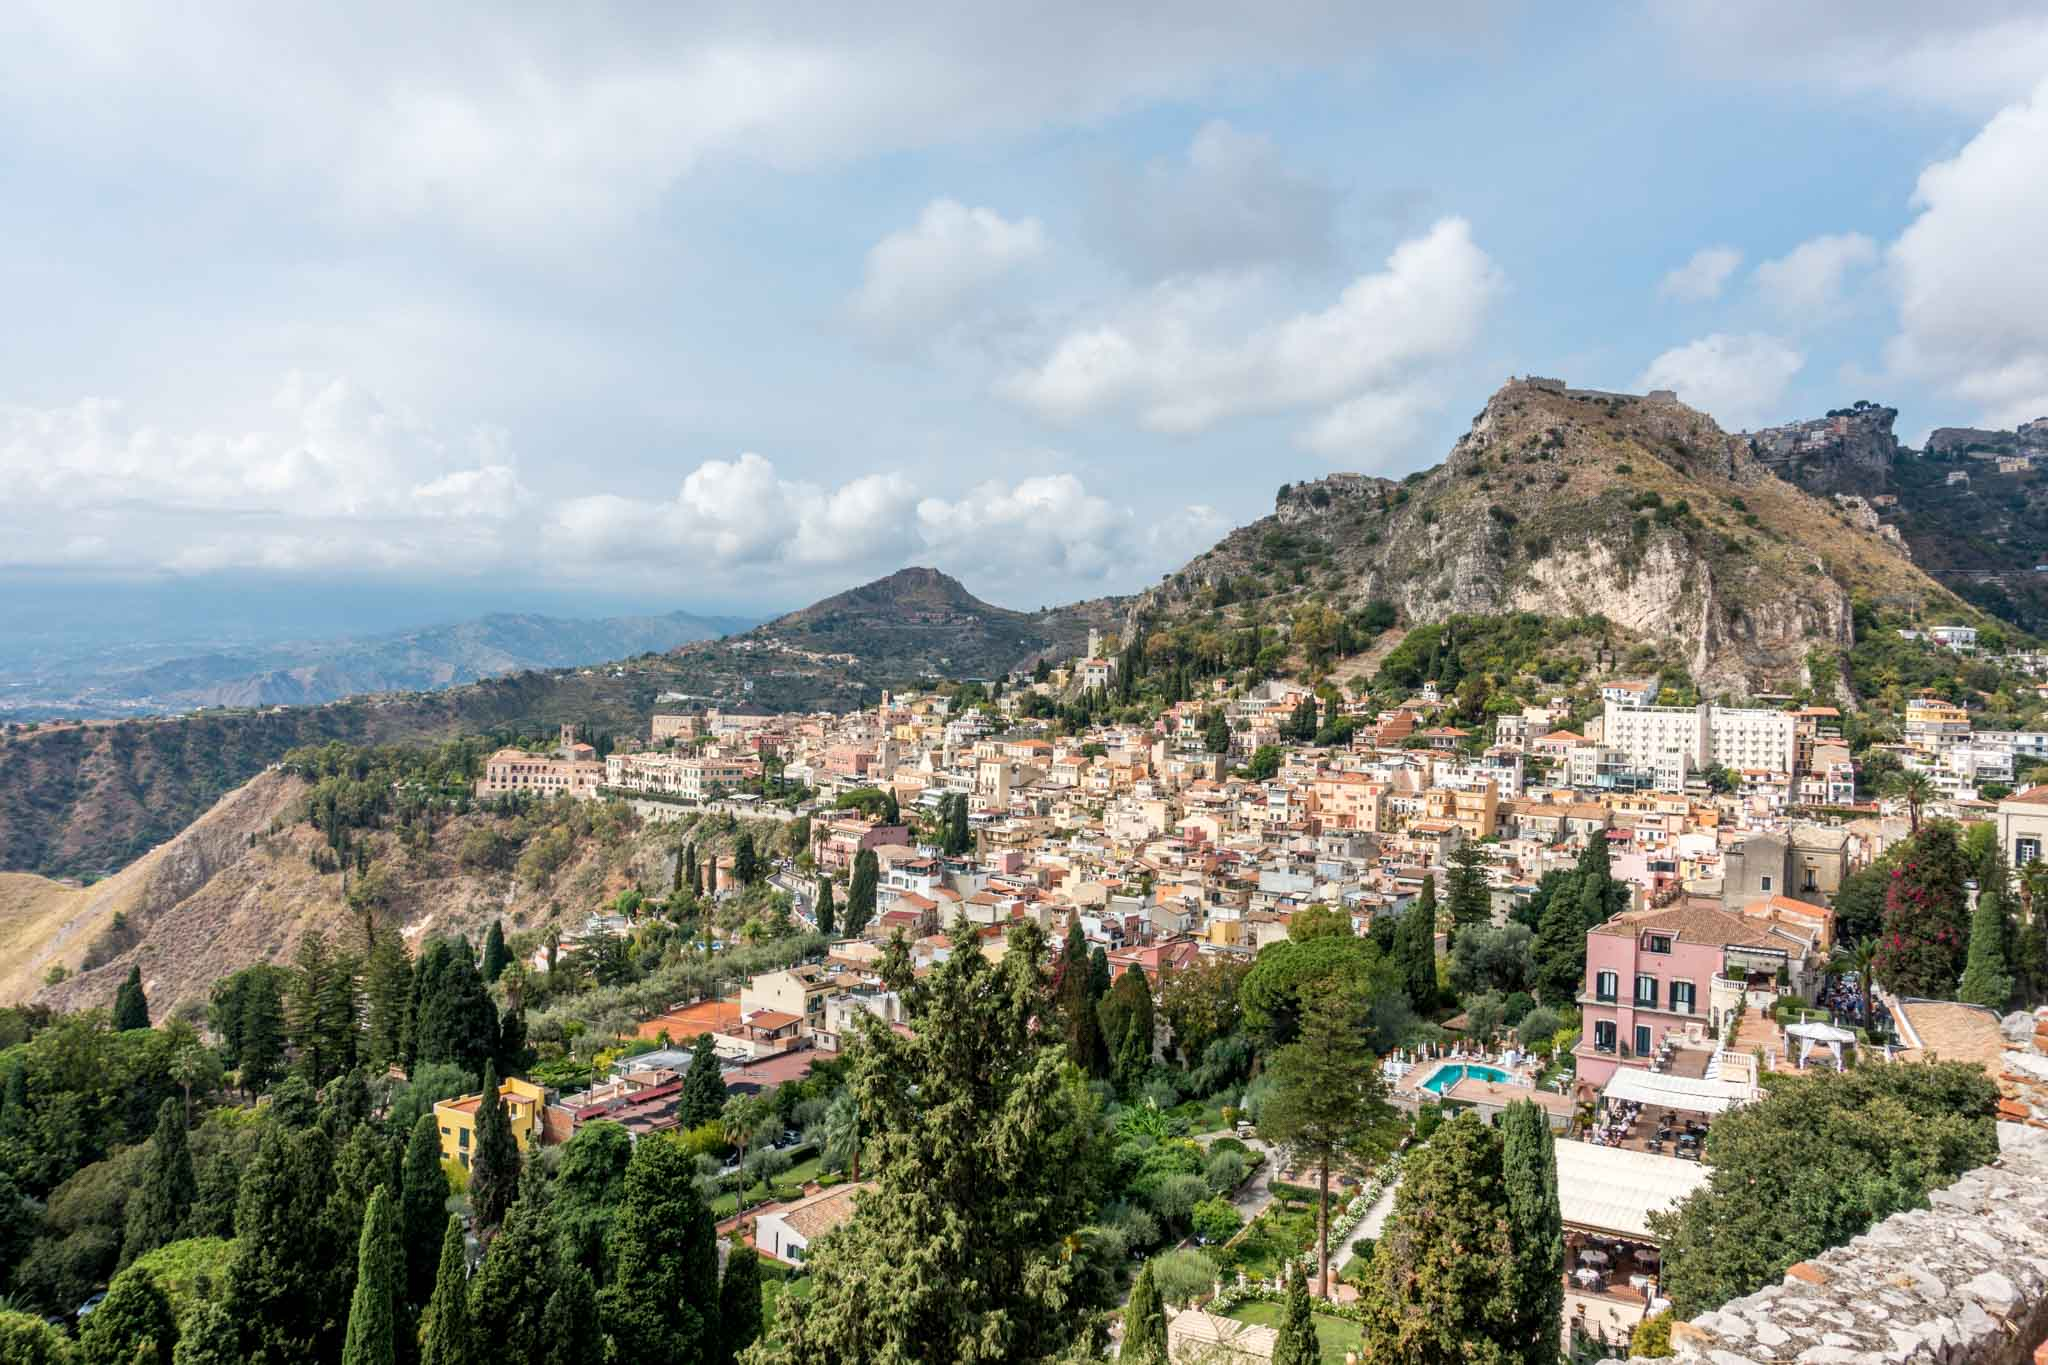 View Sicilian town from Taormina's Greek Theater